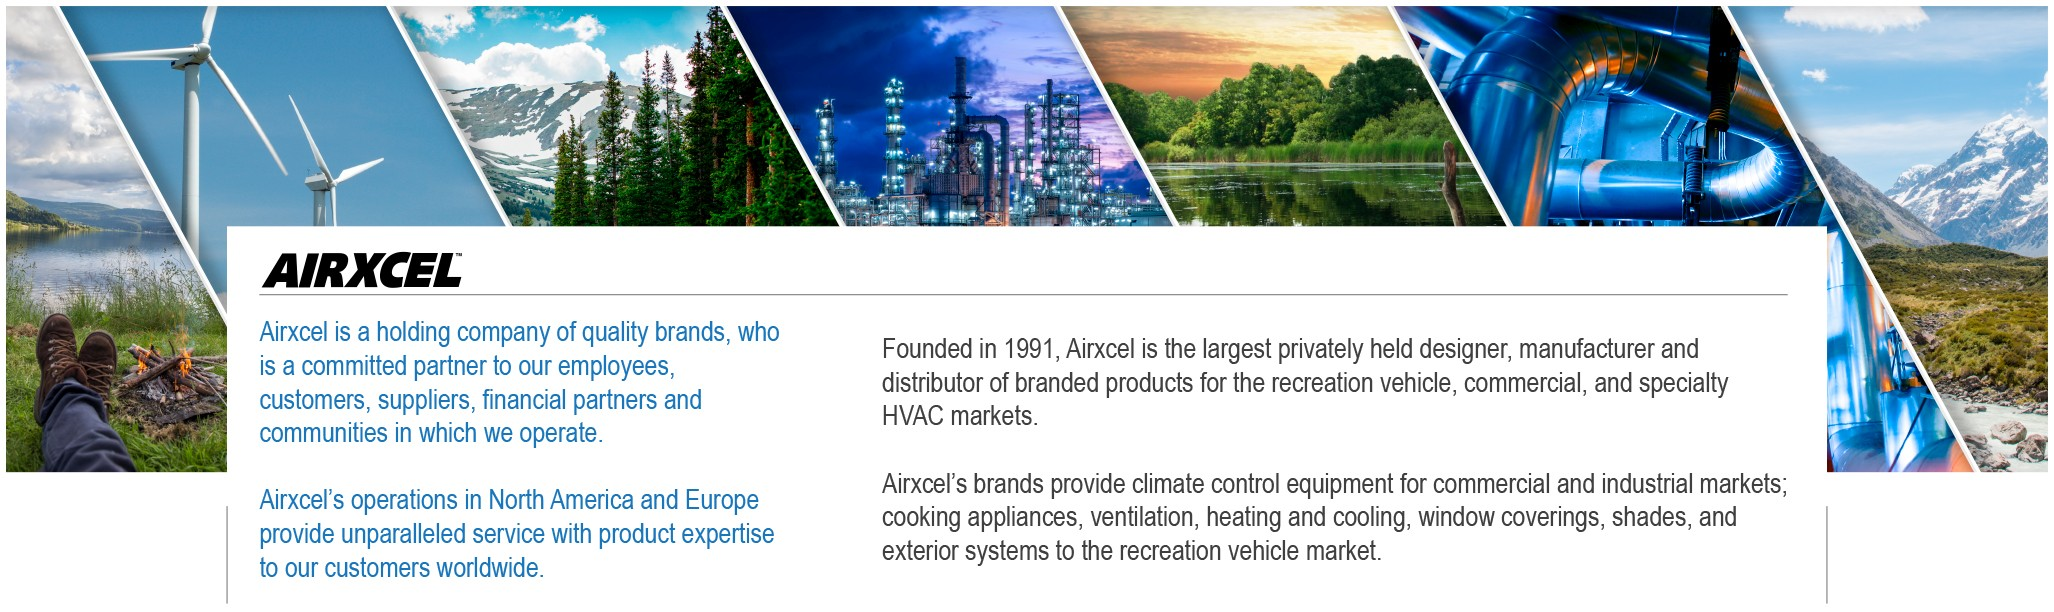 Airxcel is the largest privately held designer, manufacturer and distributor of brand products for the recreation vehicle, commercial, and specialty HVAC markets.